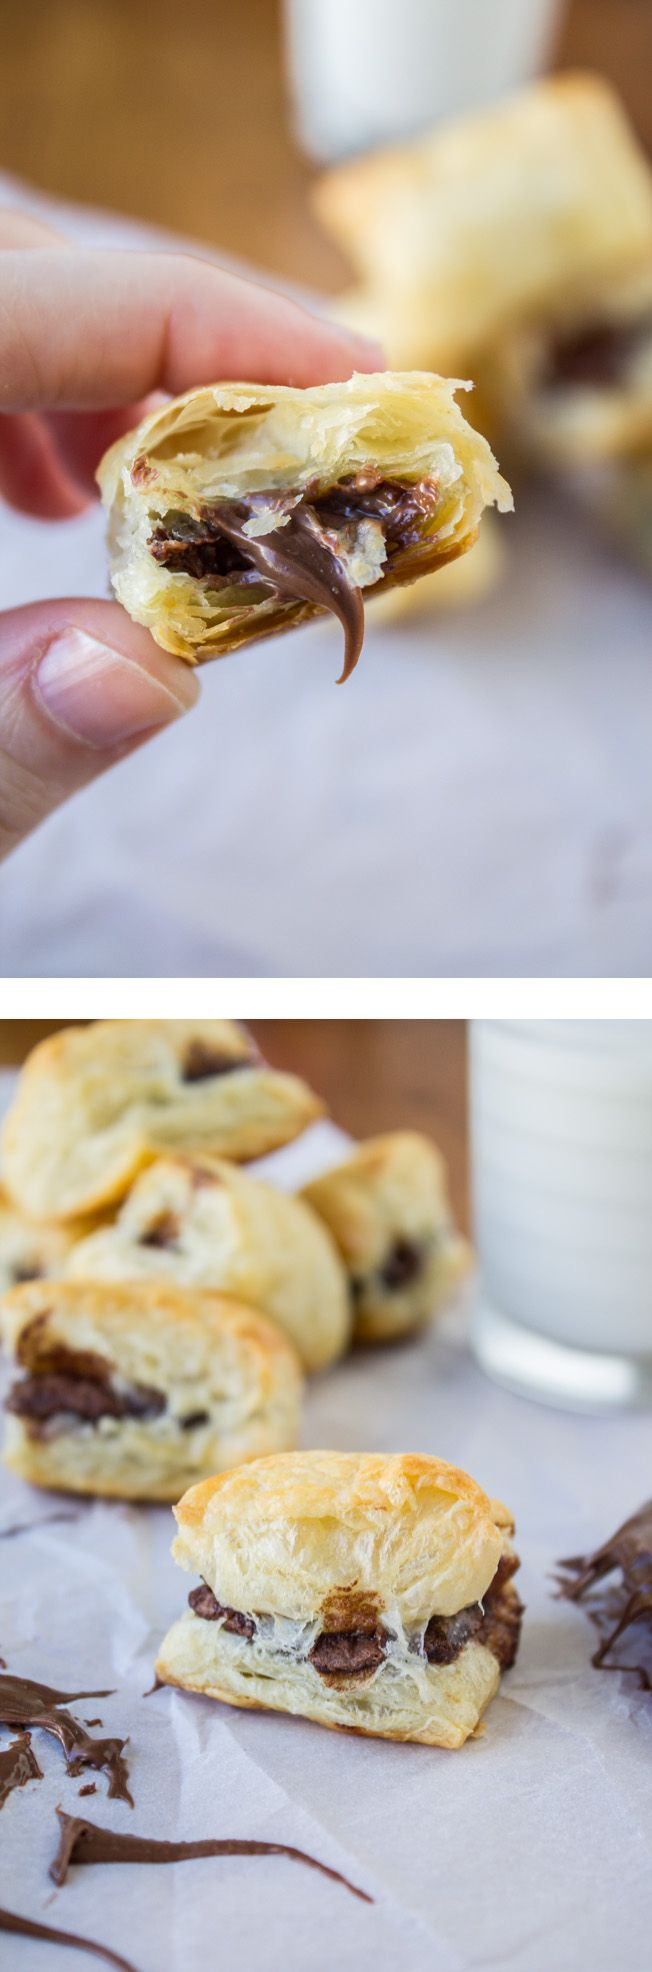 2 Ingredient Nutella Puffs - The Food Charlatan // You know you want to. 15 minutes!